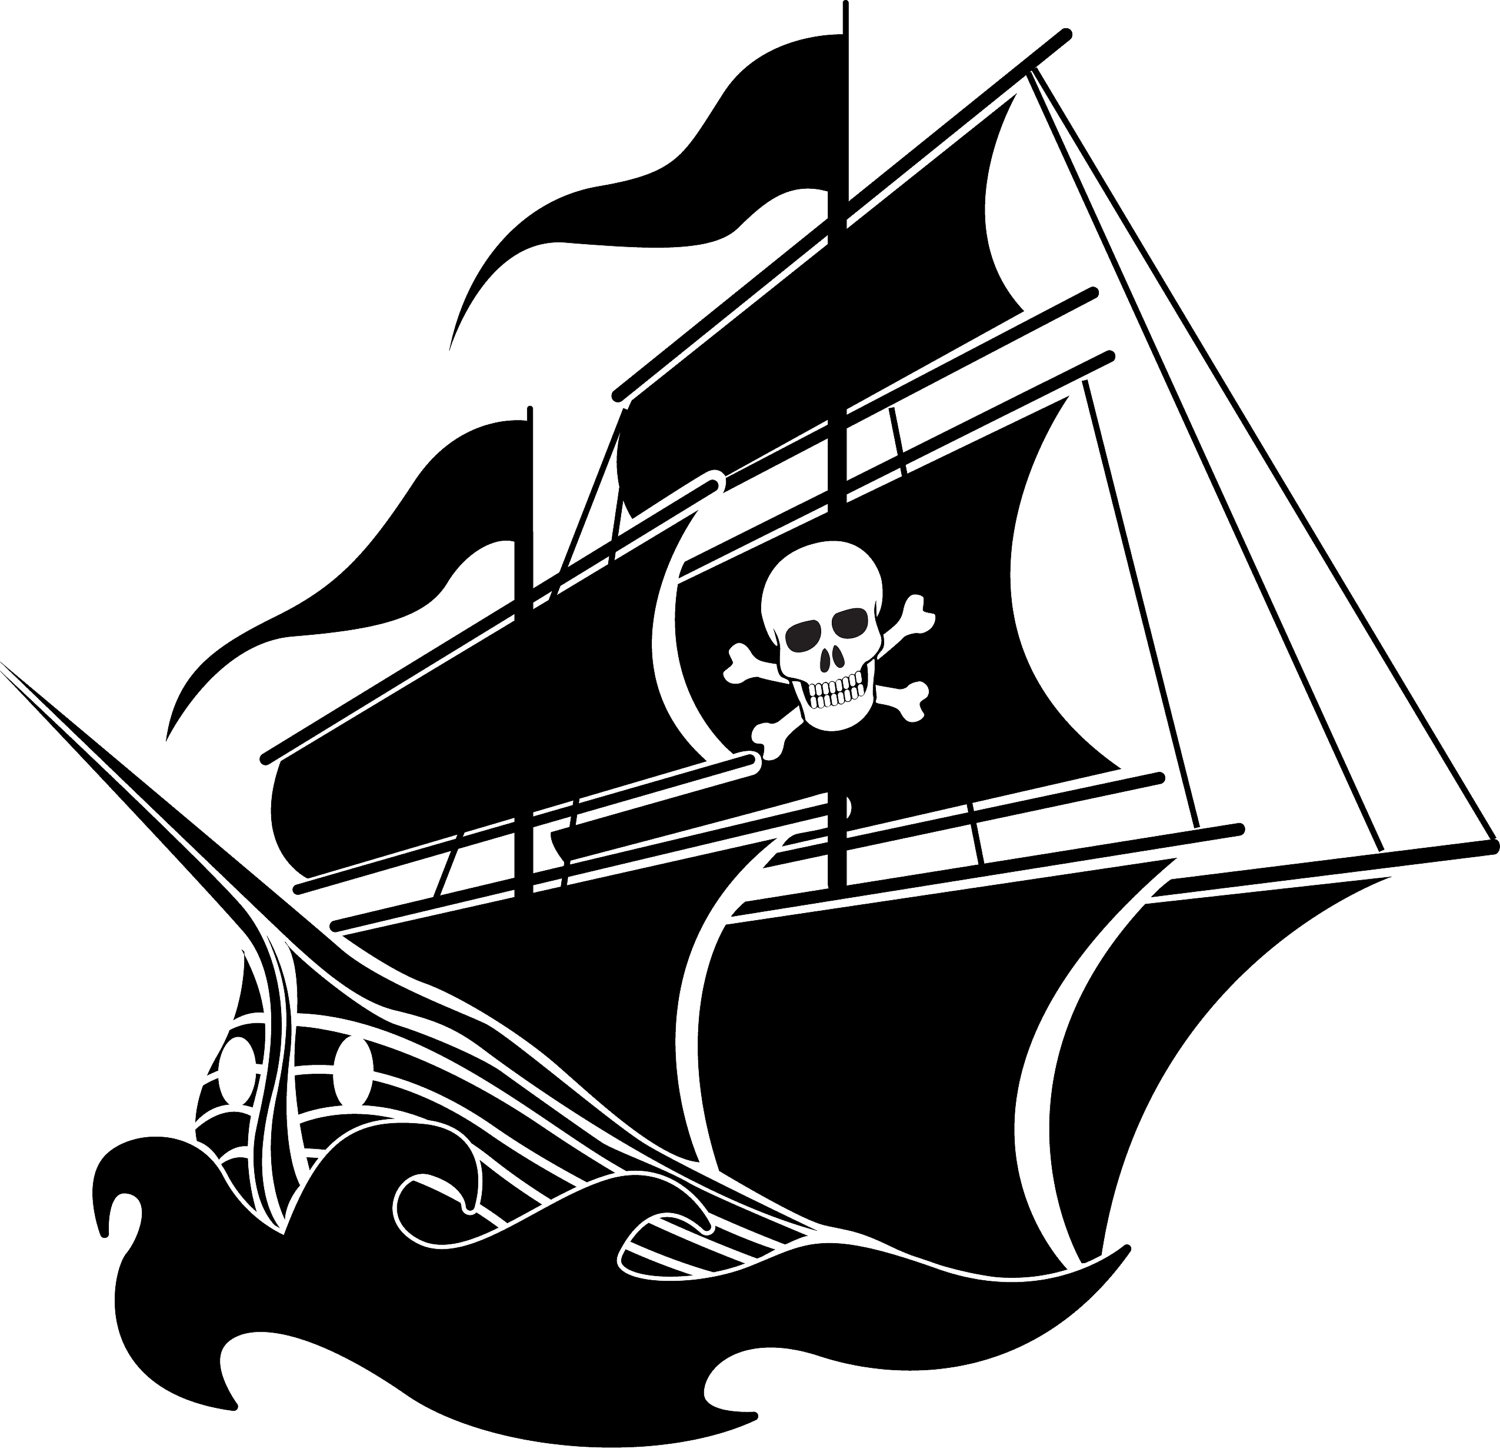 Free Pirate Ship Silhouette Png, Download Free Clip Art.